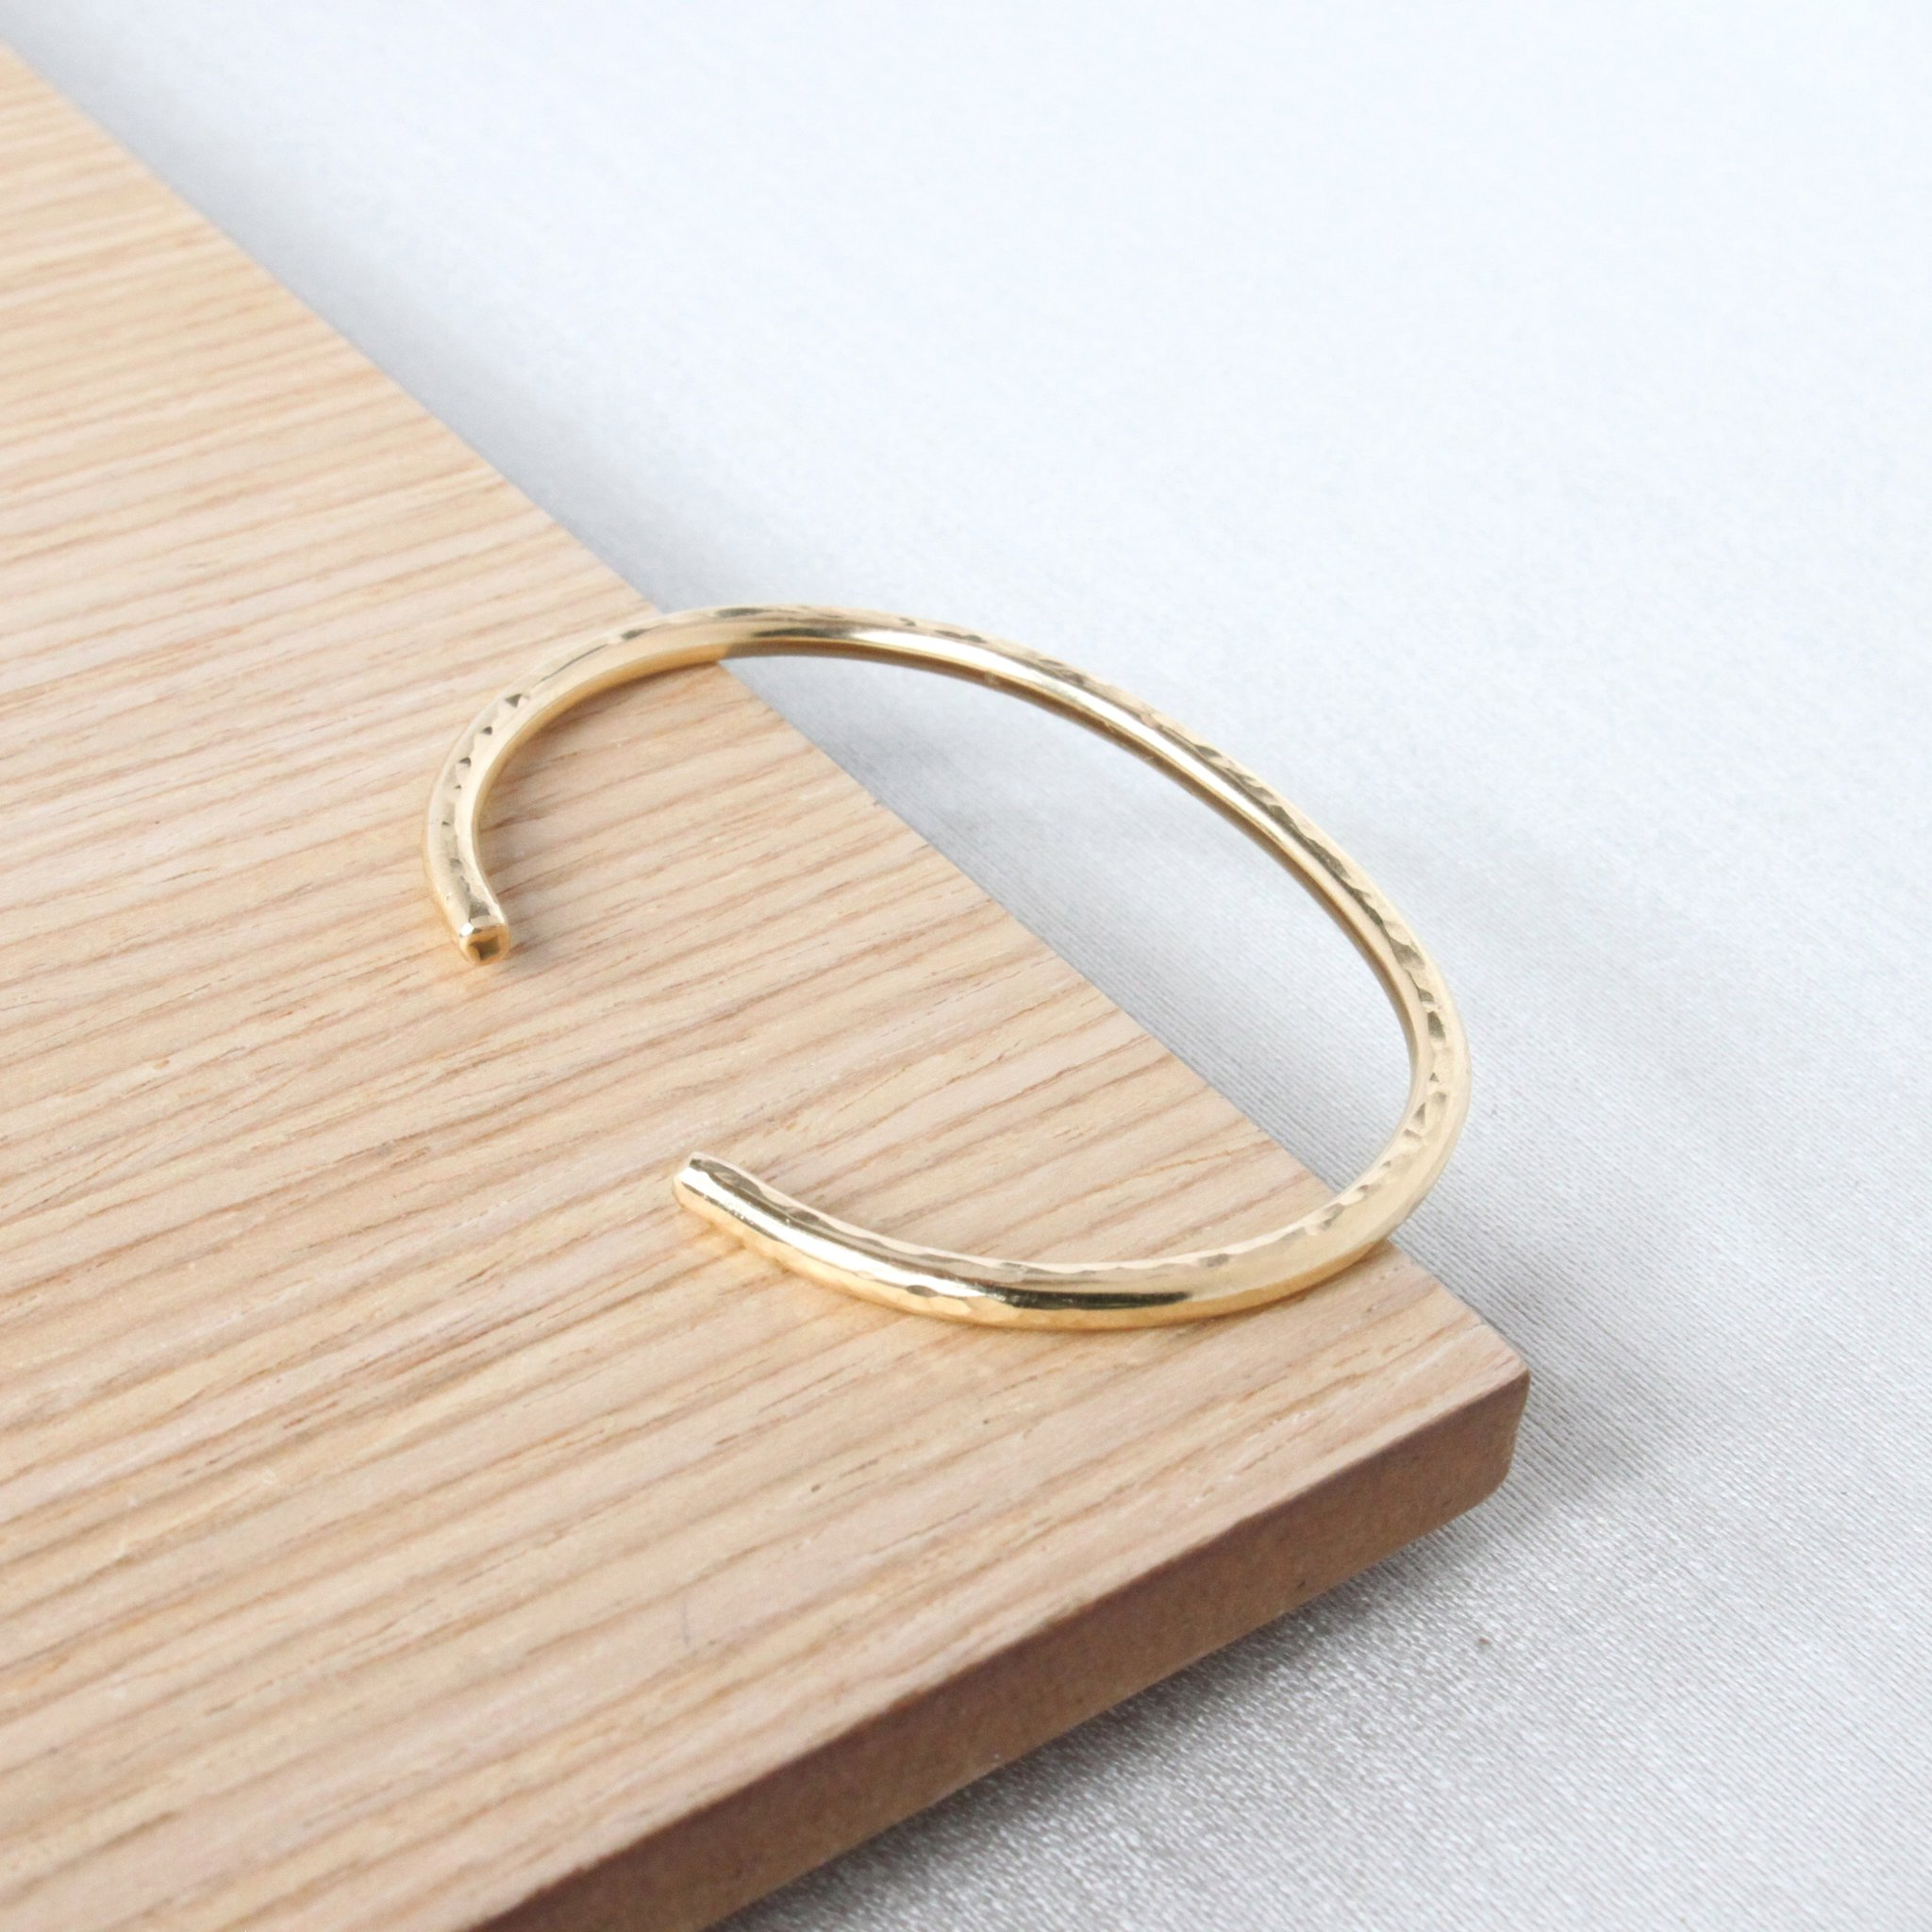 Golden Orbit Cuff Bracelet by Sara Patino Jewelry